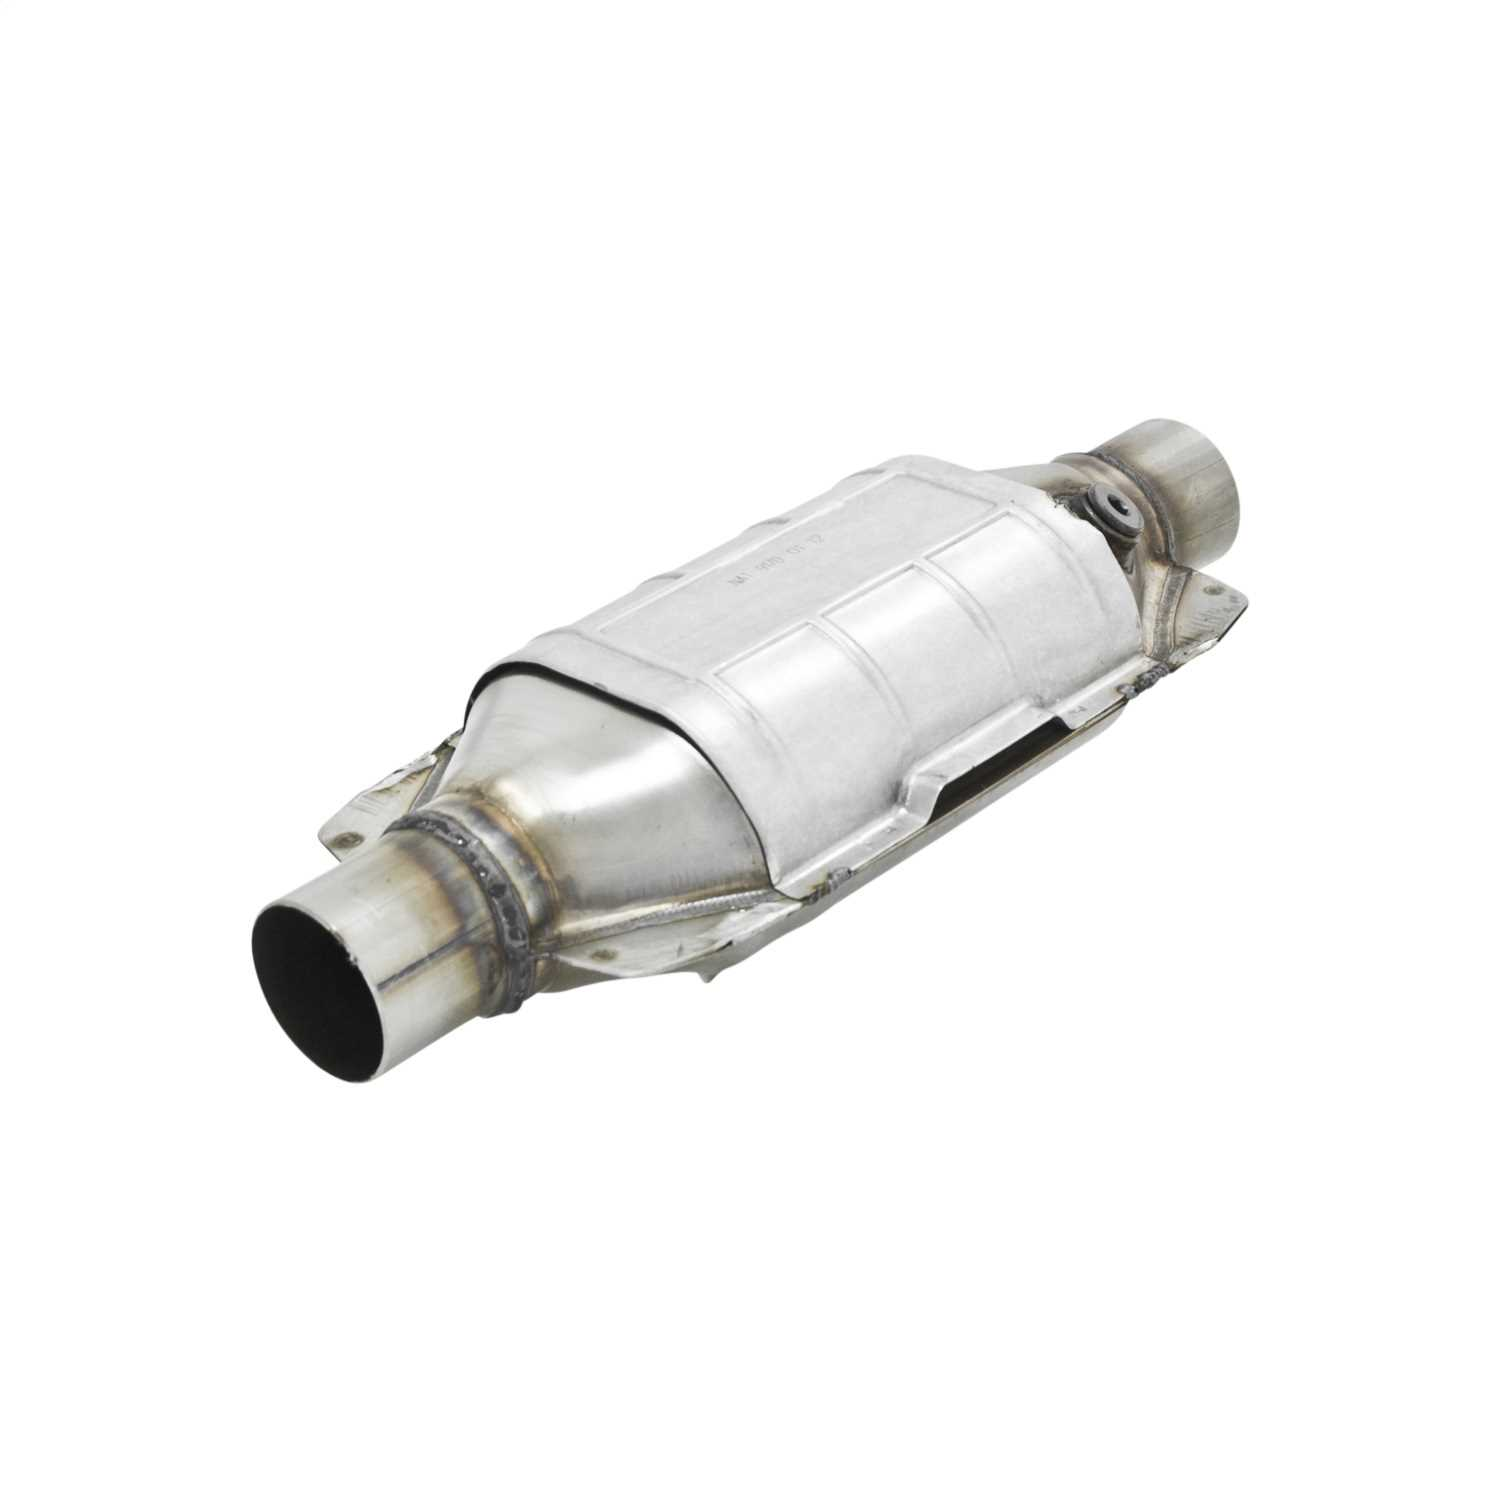 2820225 Flowmaster 49 State Catalytic Converters Universal Catalytic Converter